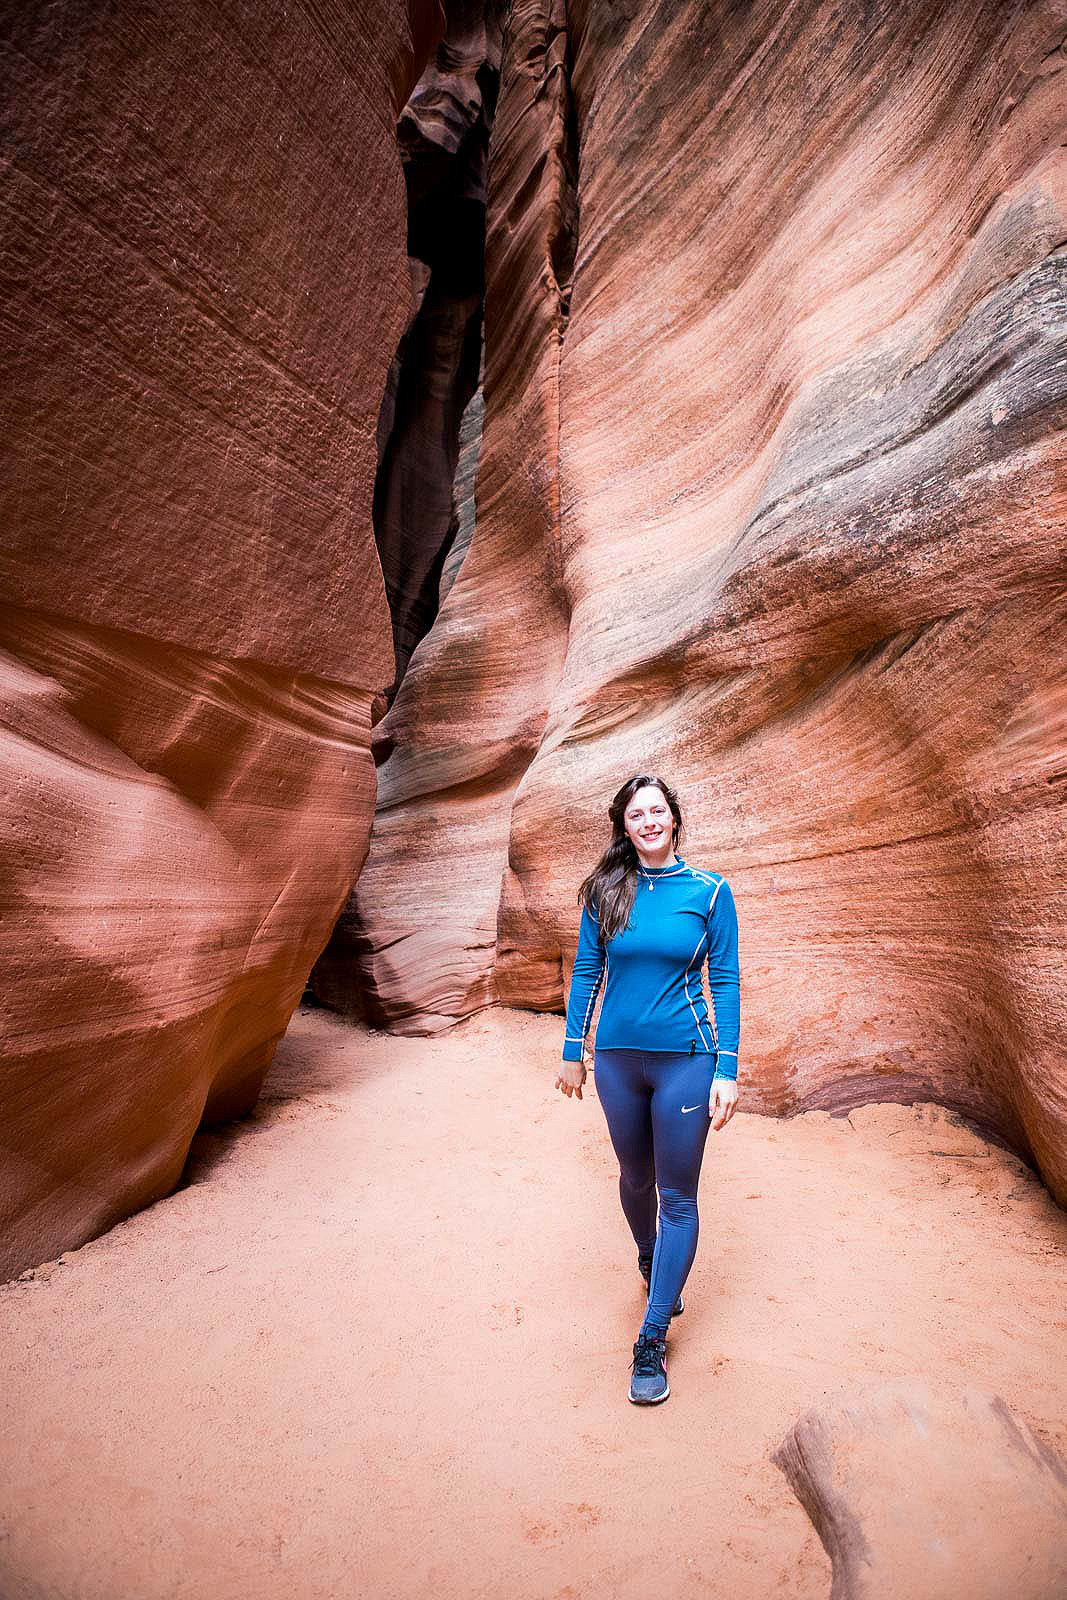 antelope_canyon_009